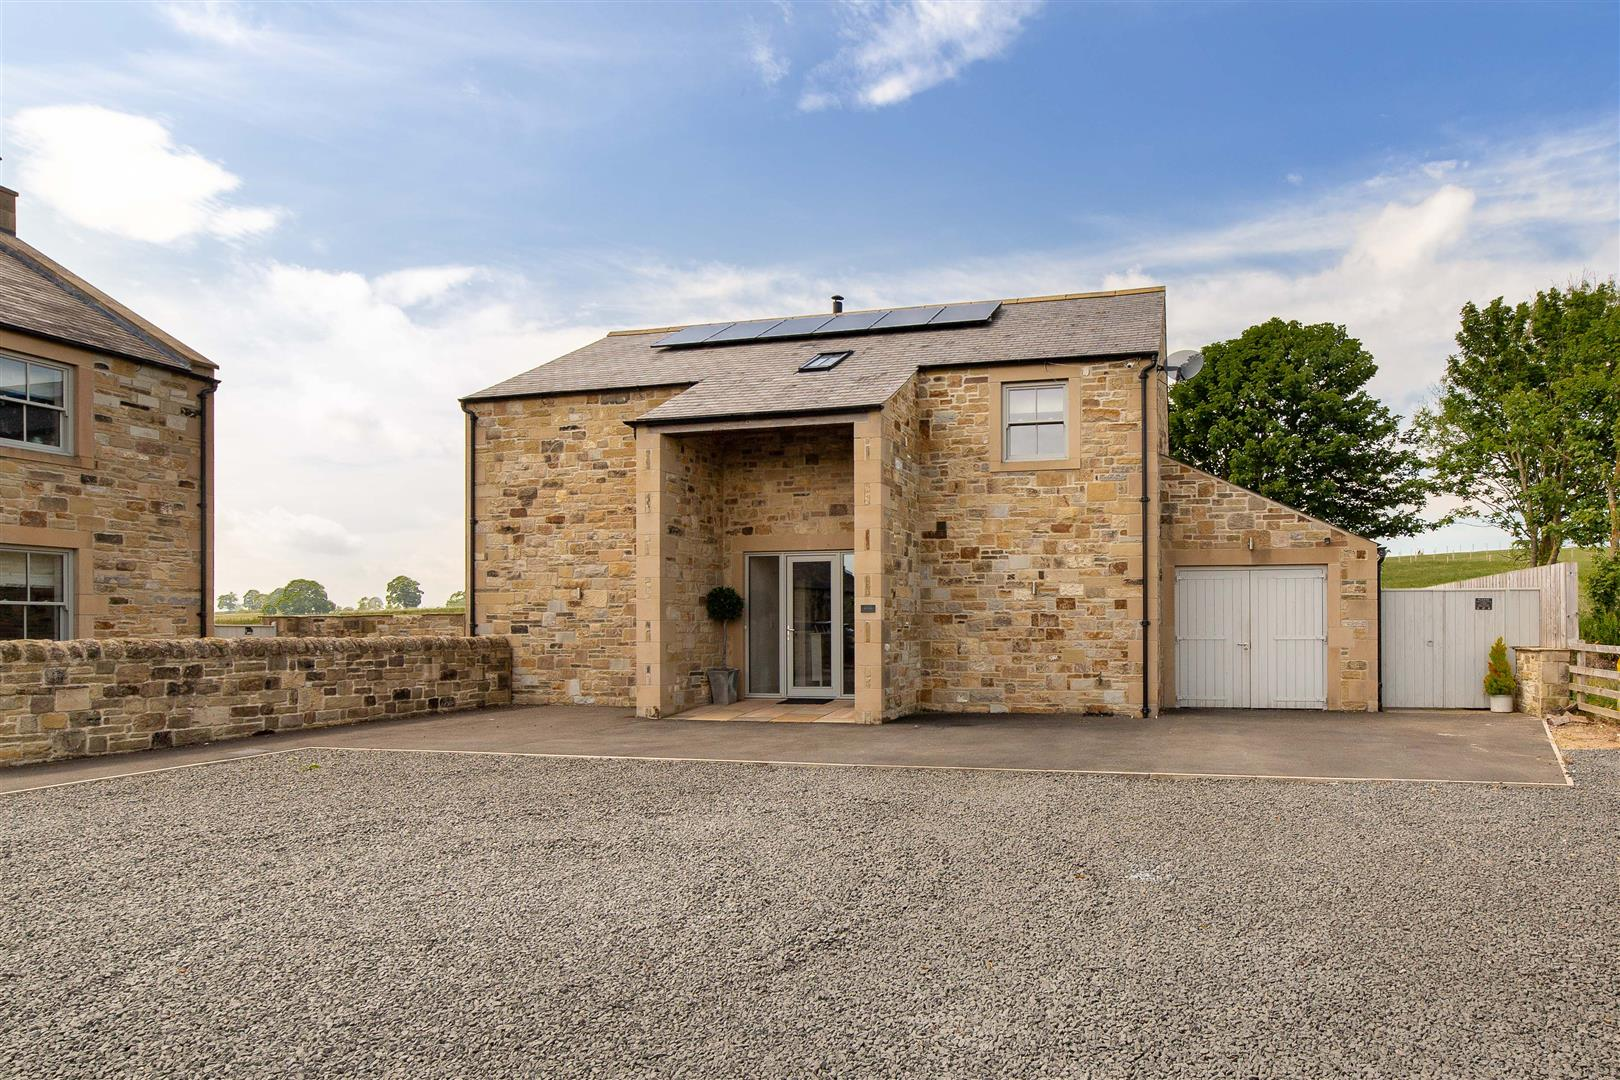 4 bed detached house for sale, Hexham 2